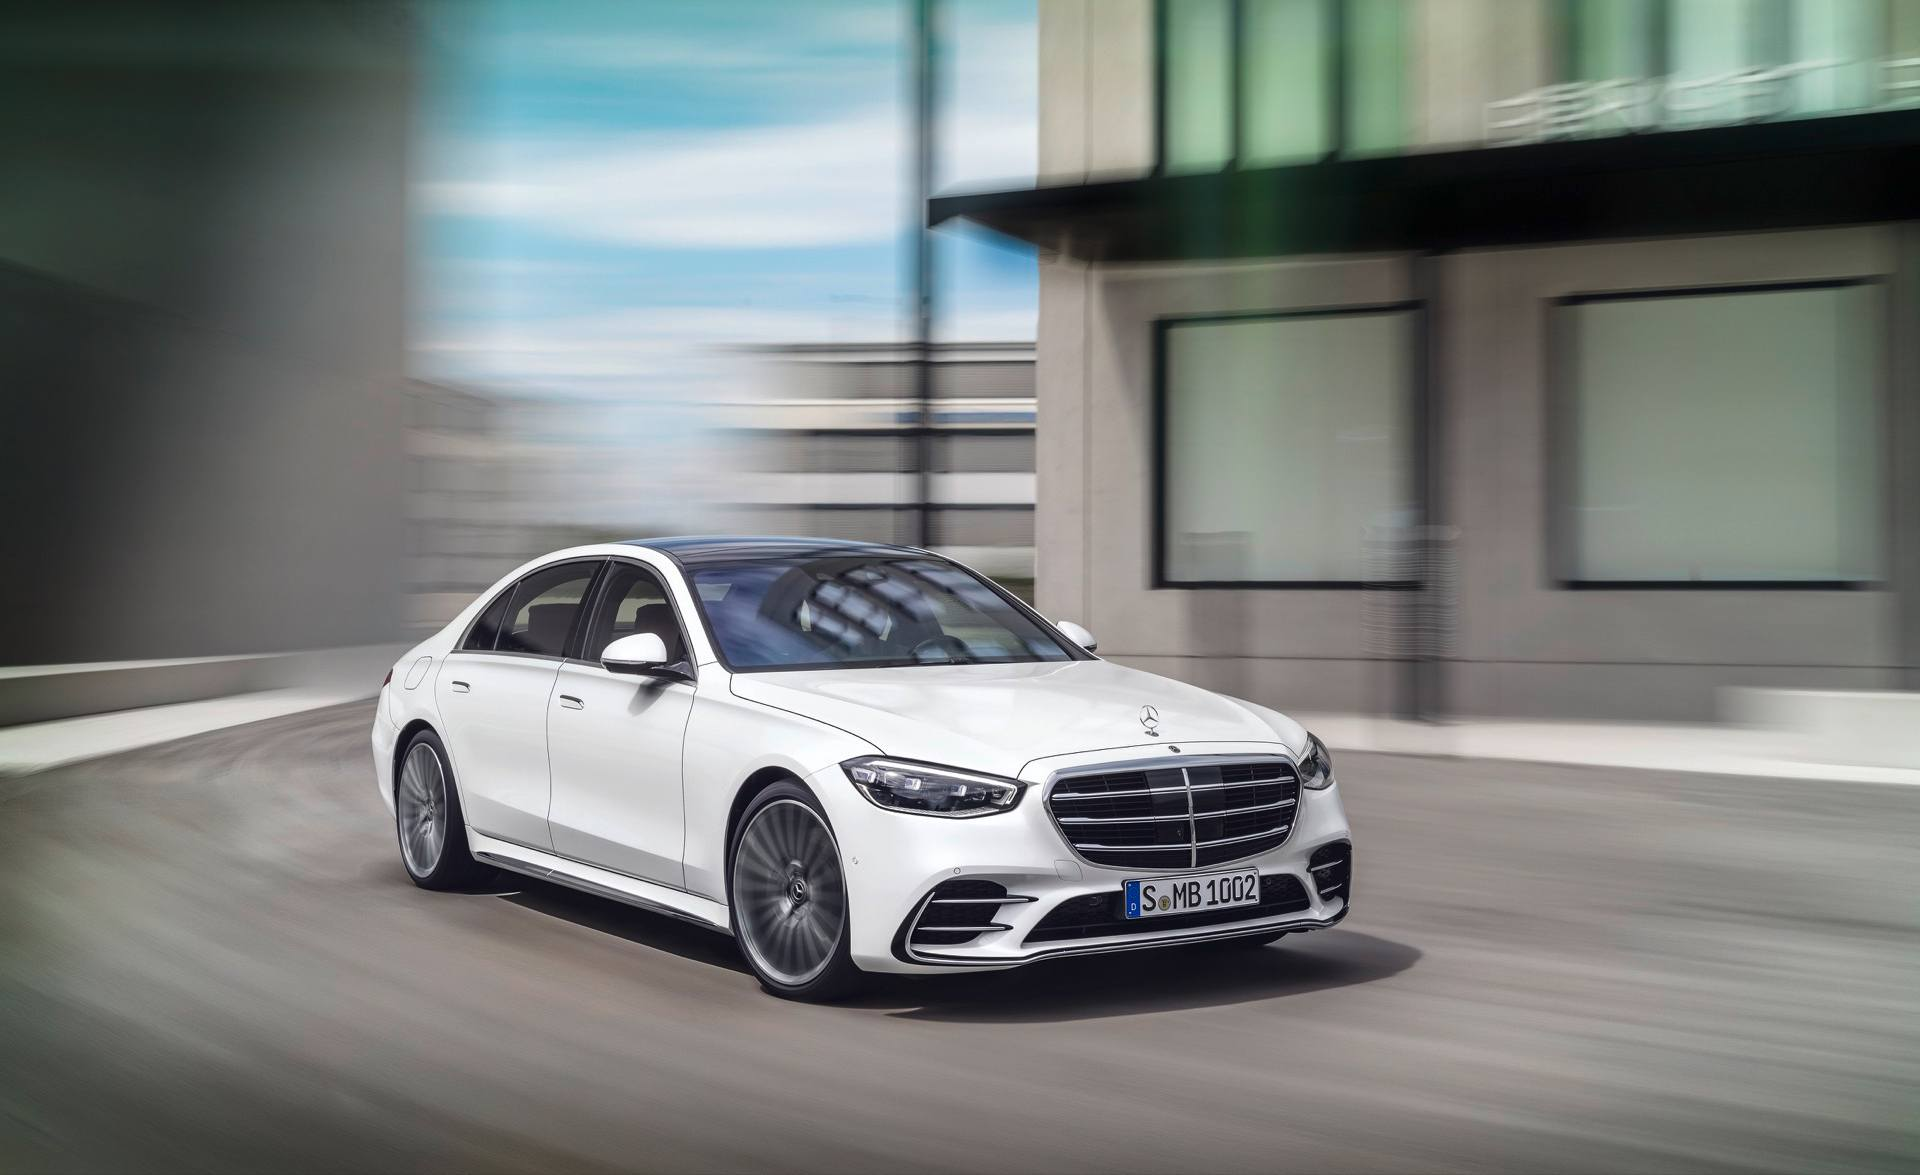 2021 Mercedes-Benz S-Class in white dynamic front three-quarter